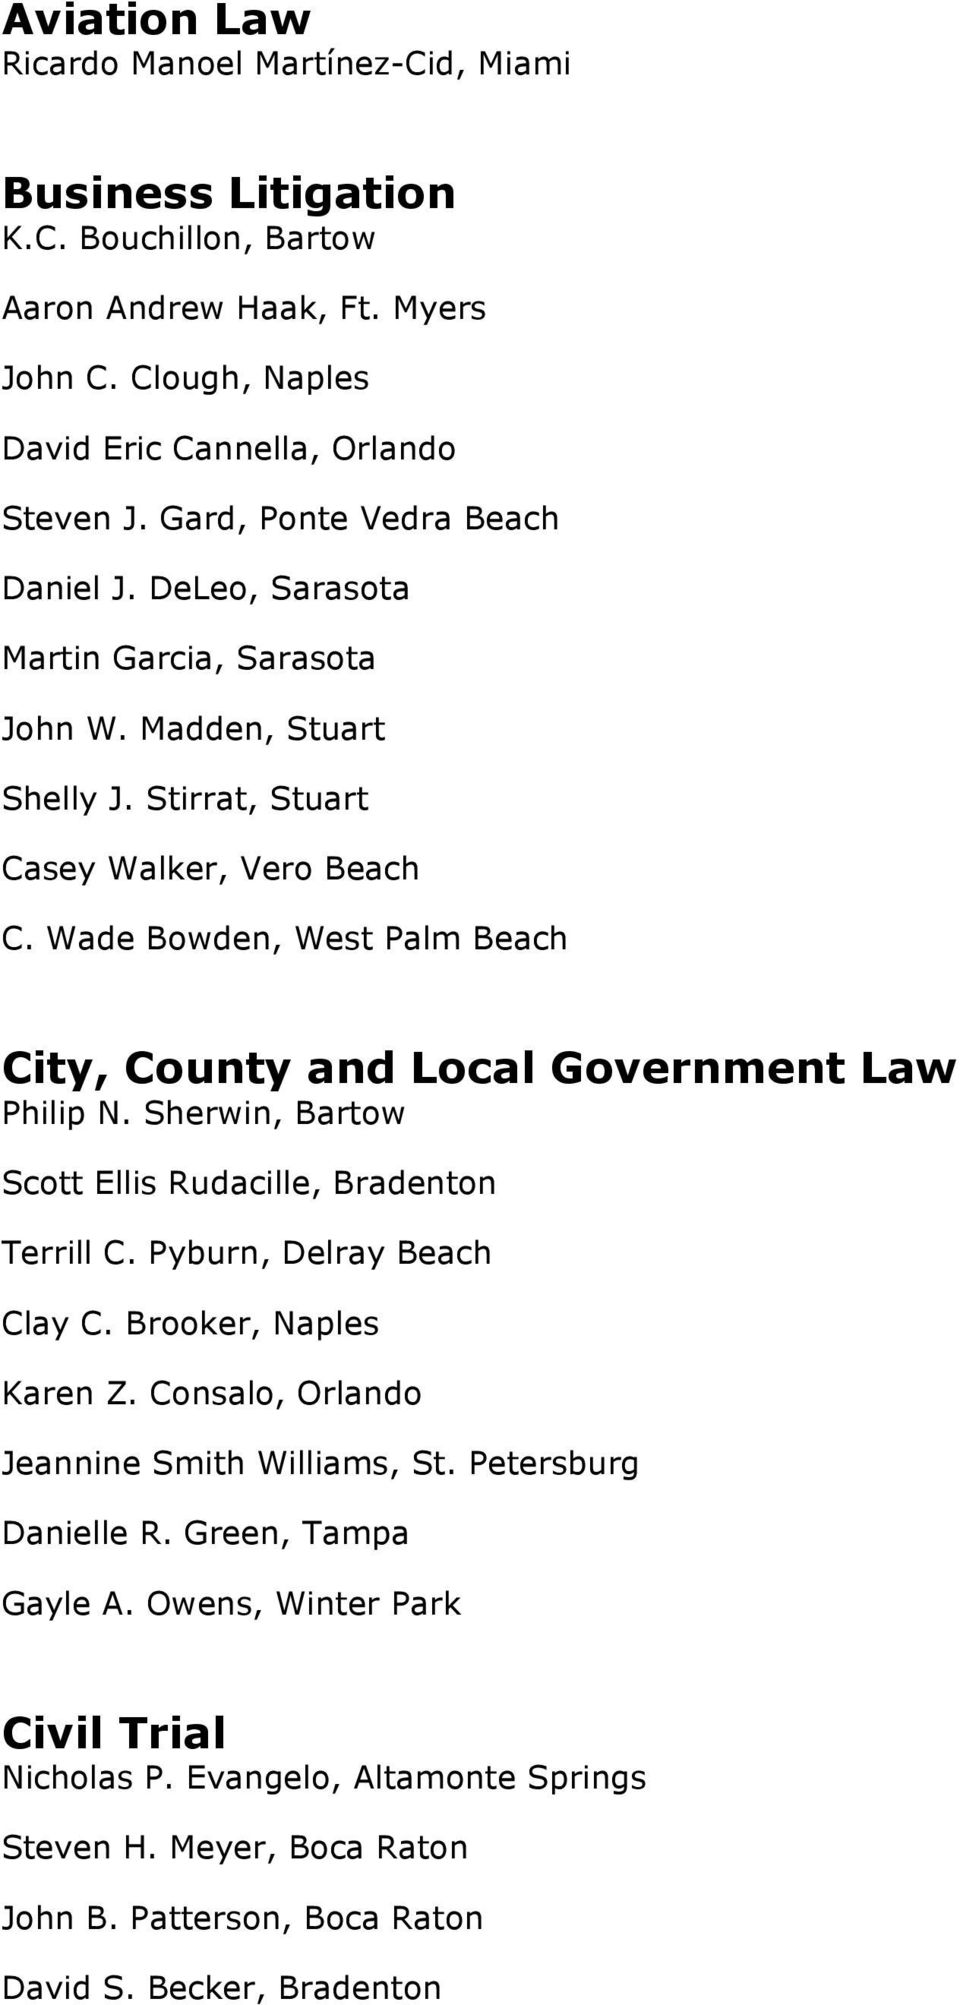 Wade Bowden, West Palm Beach City, County and Local Government Law Philip N. Sherwin, Bartow Scott Ellis Rudacille, Bradenton Terrill C. Pyburn, Delray Beach Clay C. Brooker, Naples Karen Z.